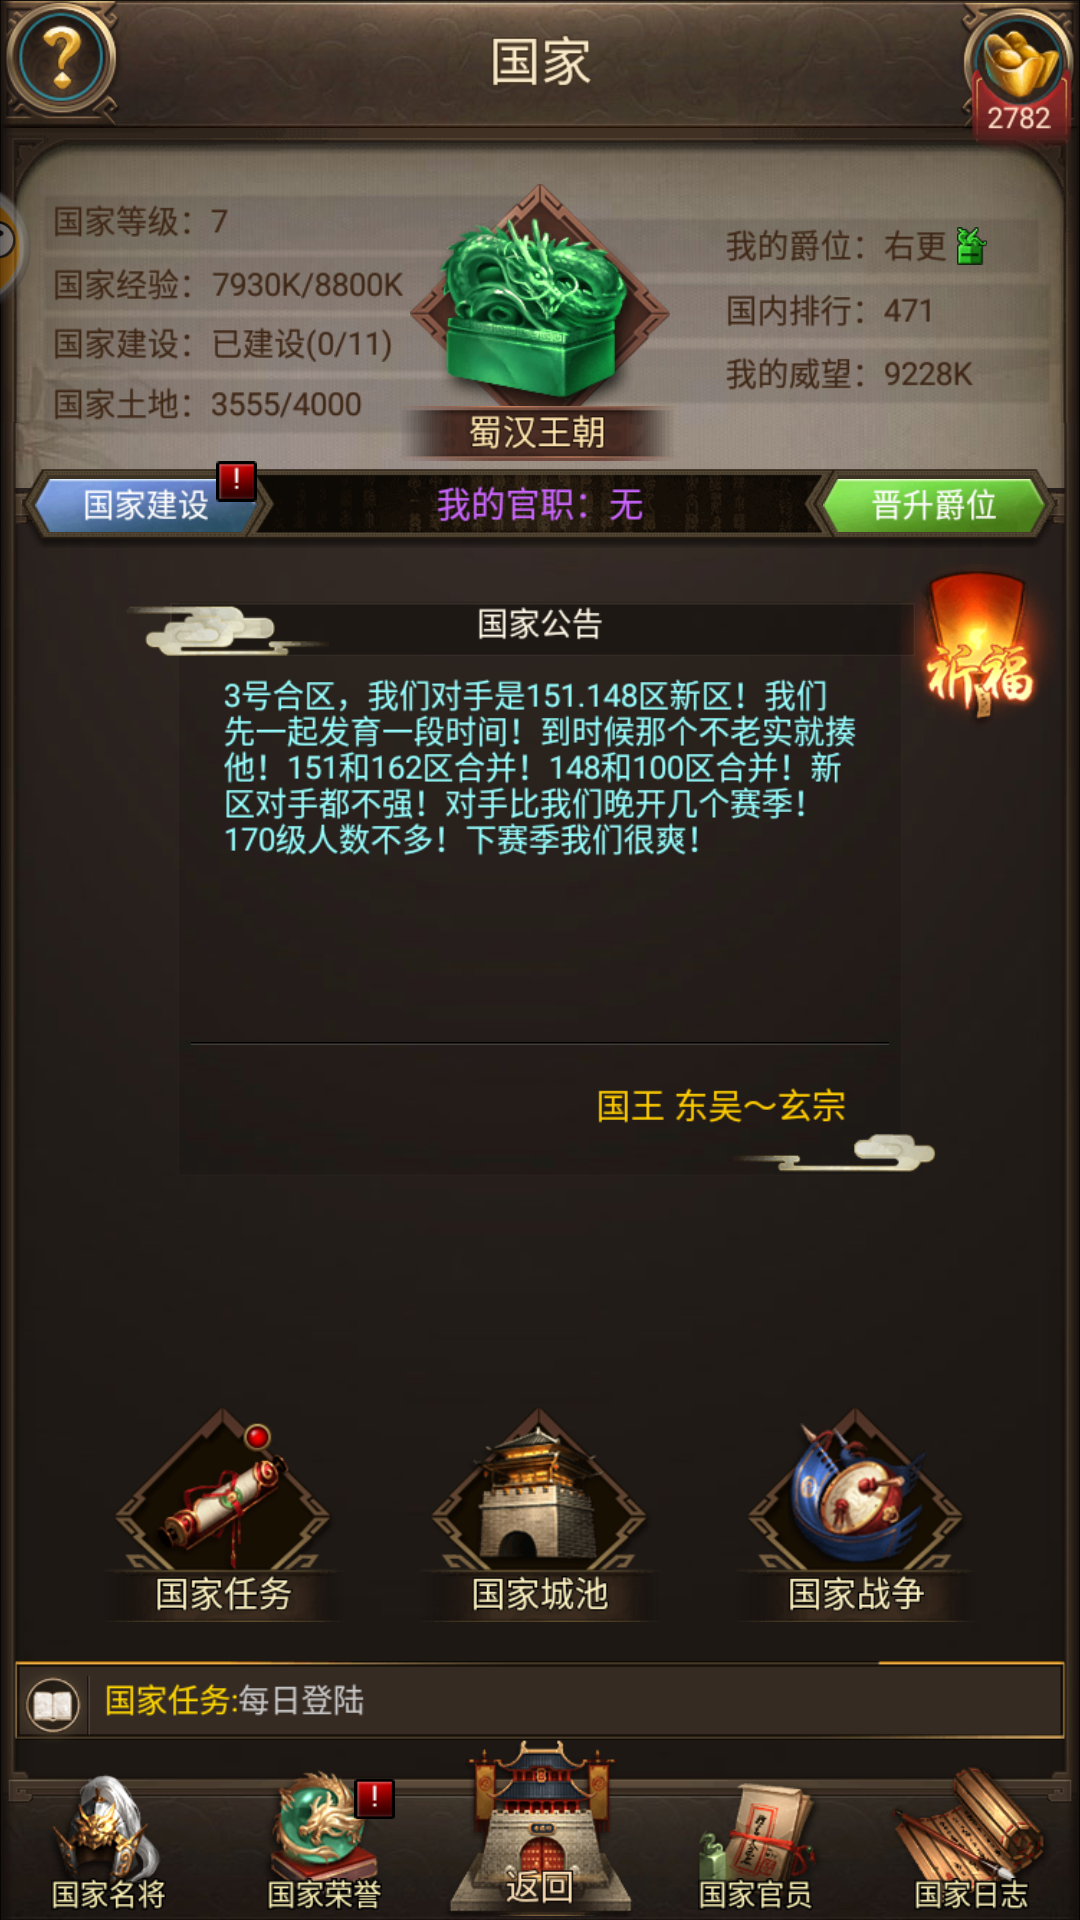 Screenshot_2019-06-30-20-28-00-429_com.juedigame.sgdjl.shoumeng.png